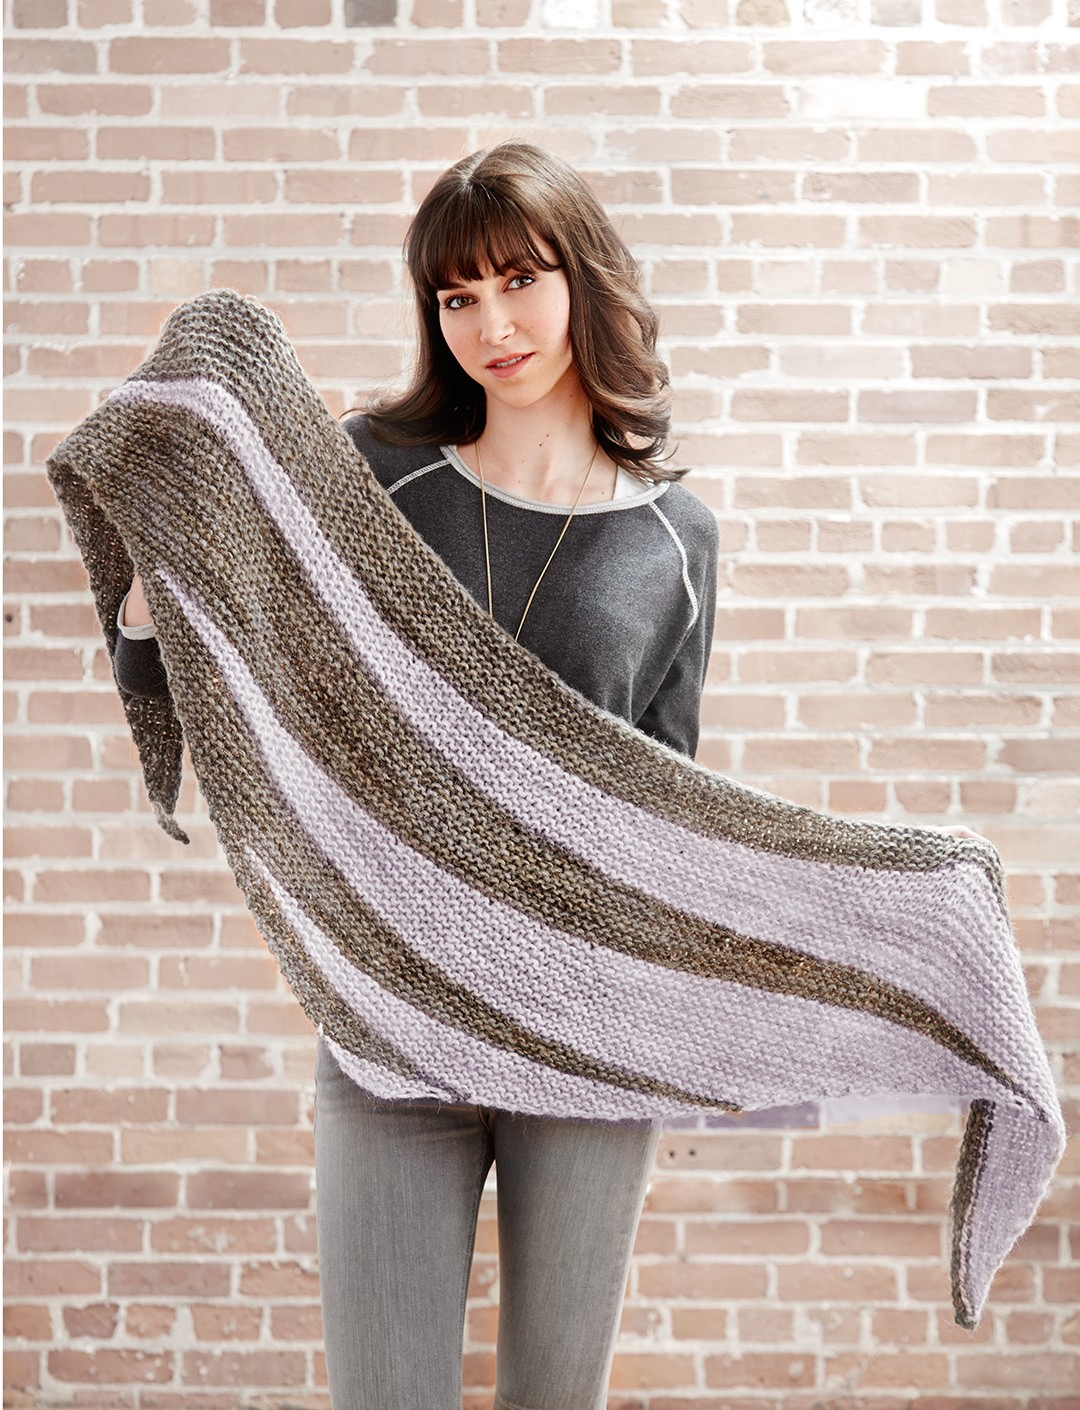 Free Knitting Pattern For Triangular Shawl : Free Pattern Friday: Knit Shawl Pattern from Yarnspirations - Stitch and Unwind